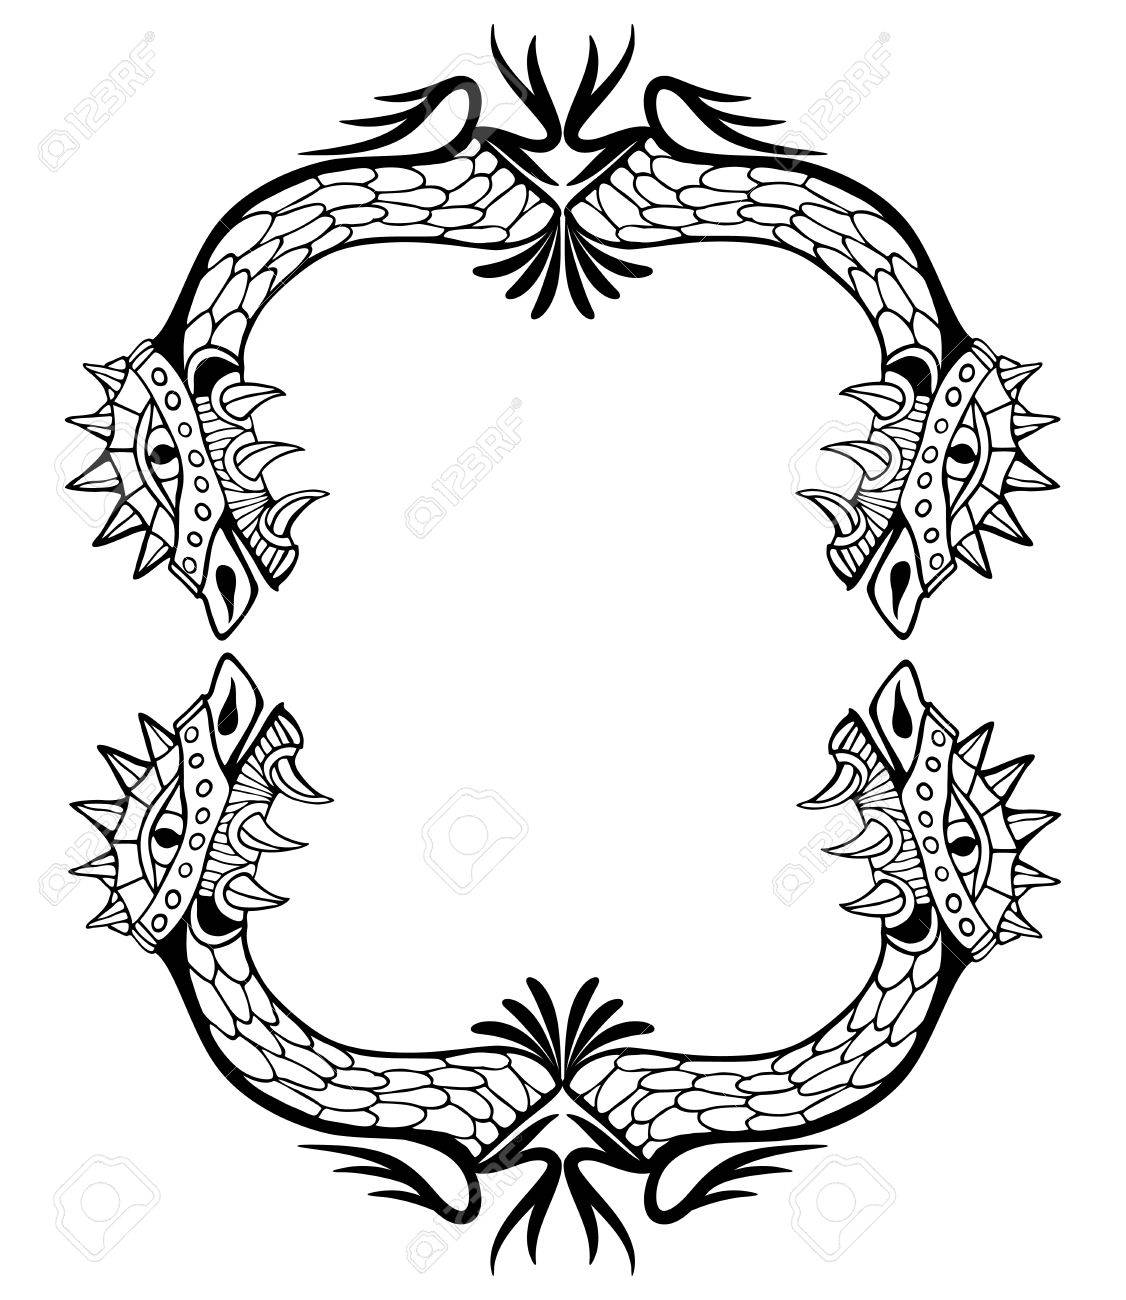 dragon frame coloring book and tattoo vector illustration royalty